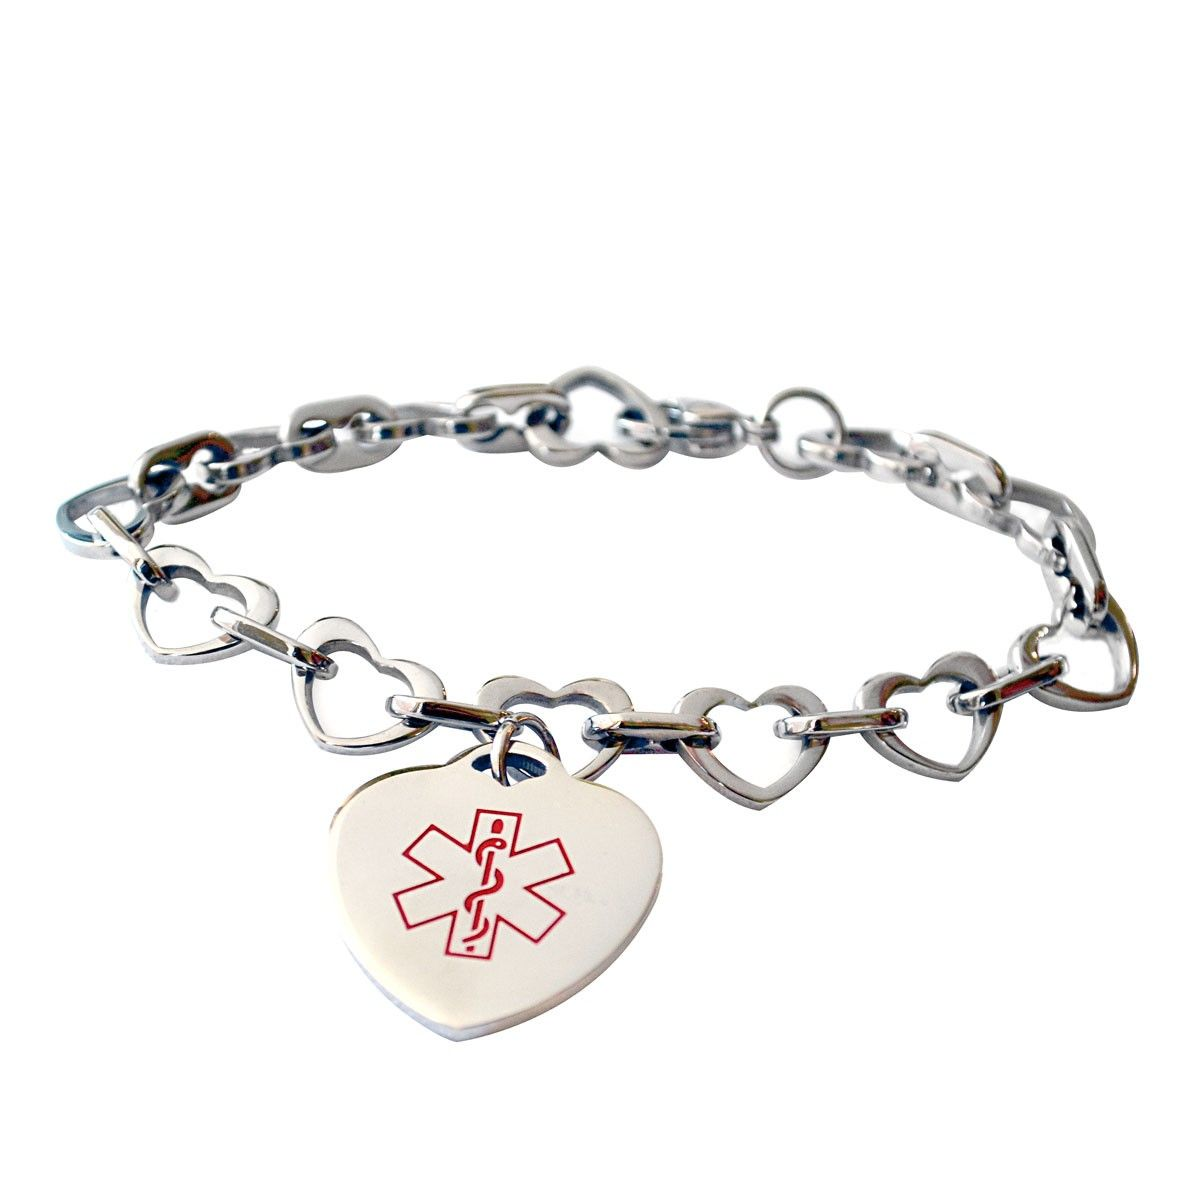 e89706260854c medical id bracelet for women with heart chain design and heart ...